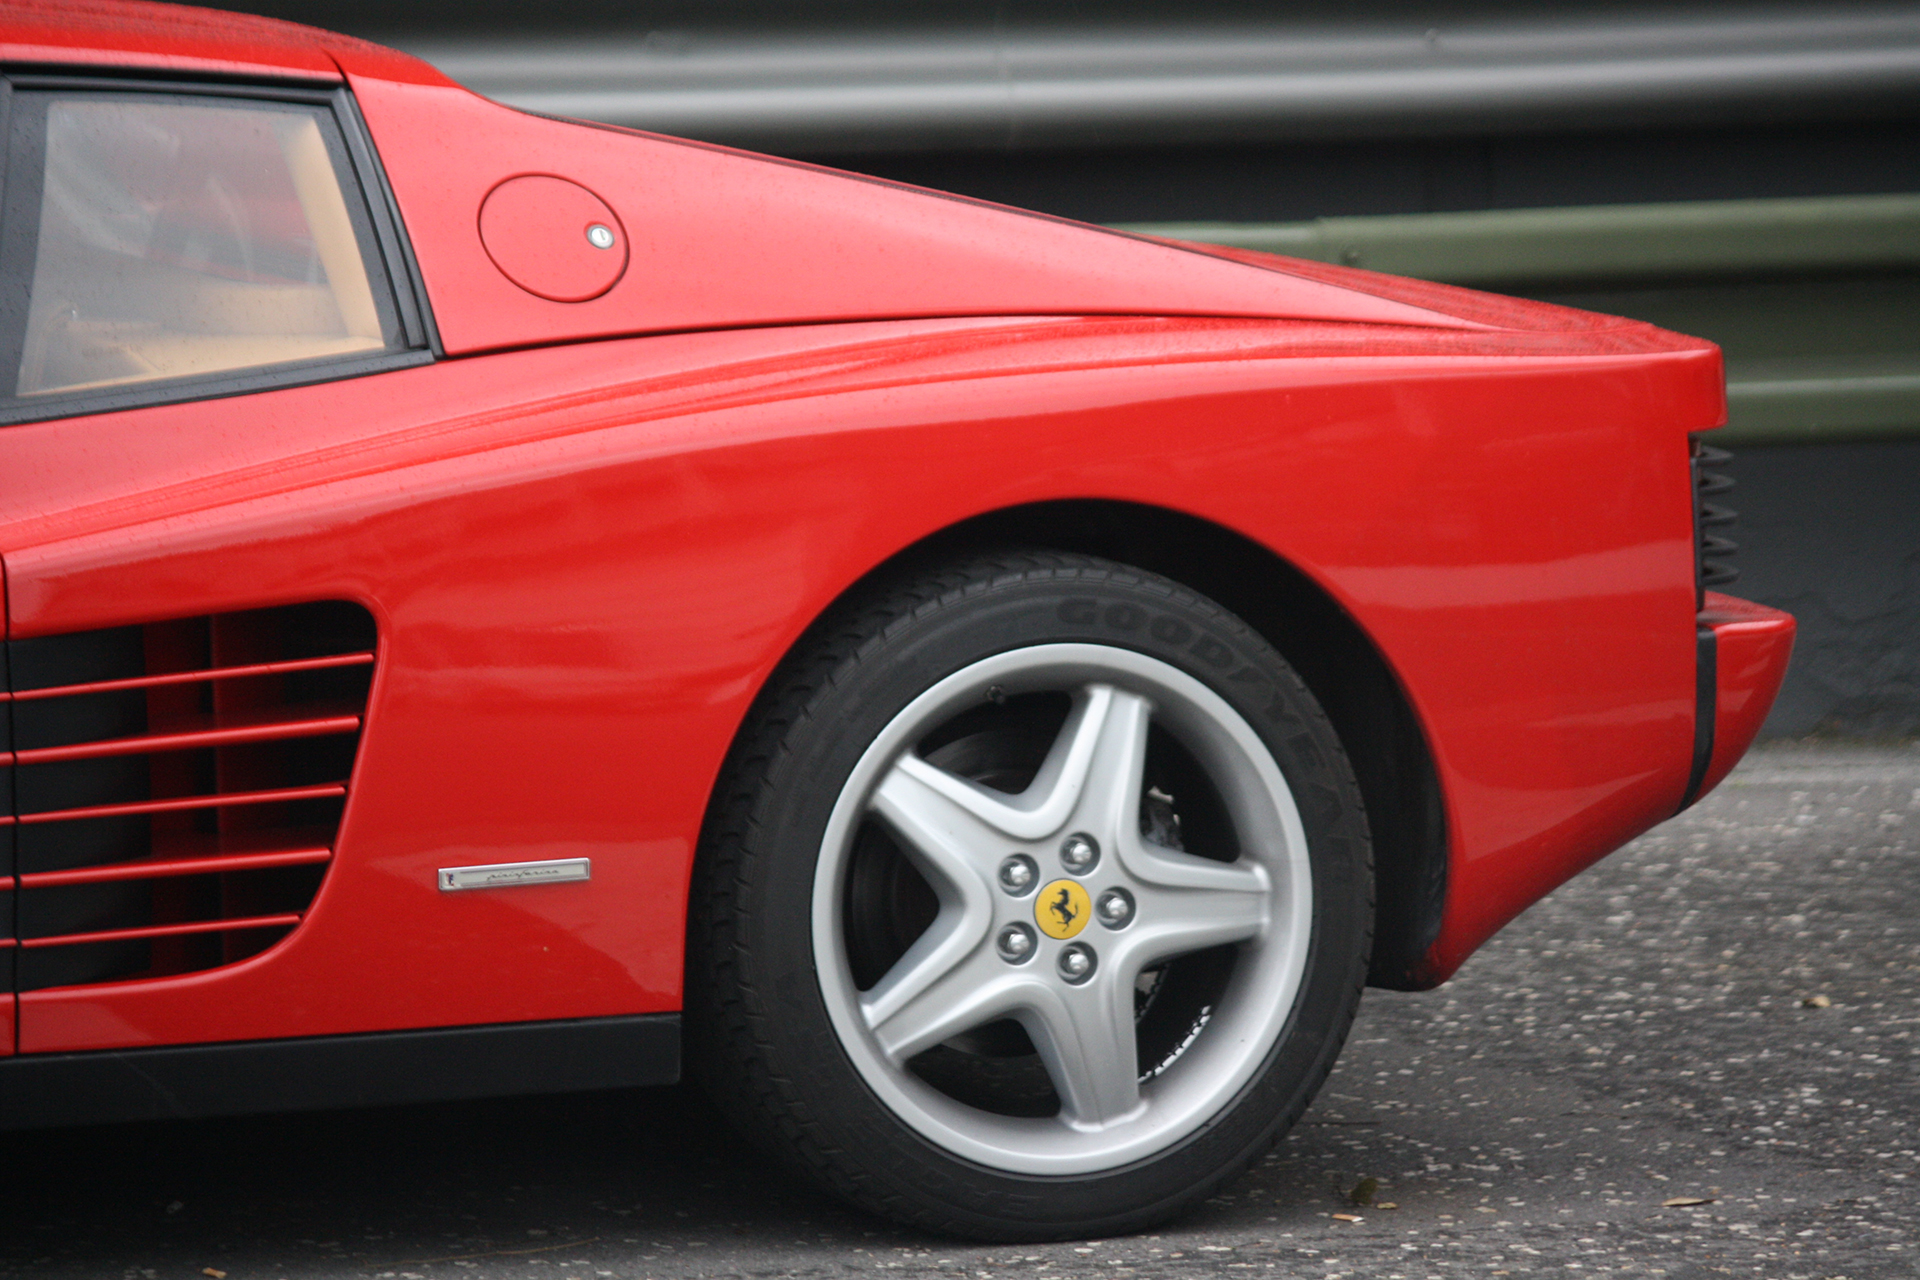 Ferrari Testarossa - profil arrière / rear side - Youngtimers Meeting - 2016 - photo Fiona Rodrigues